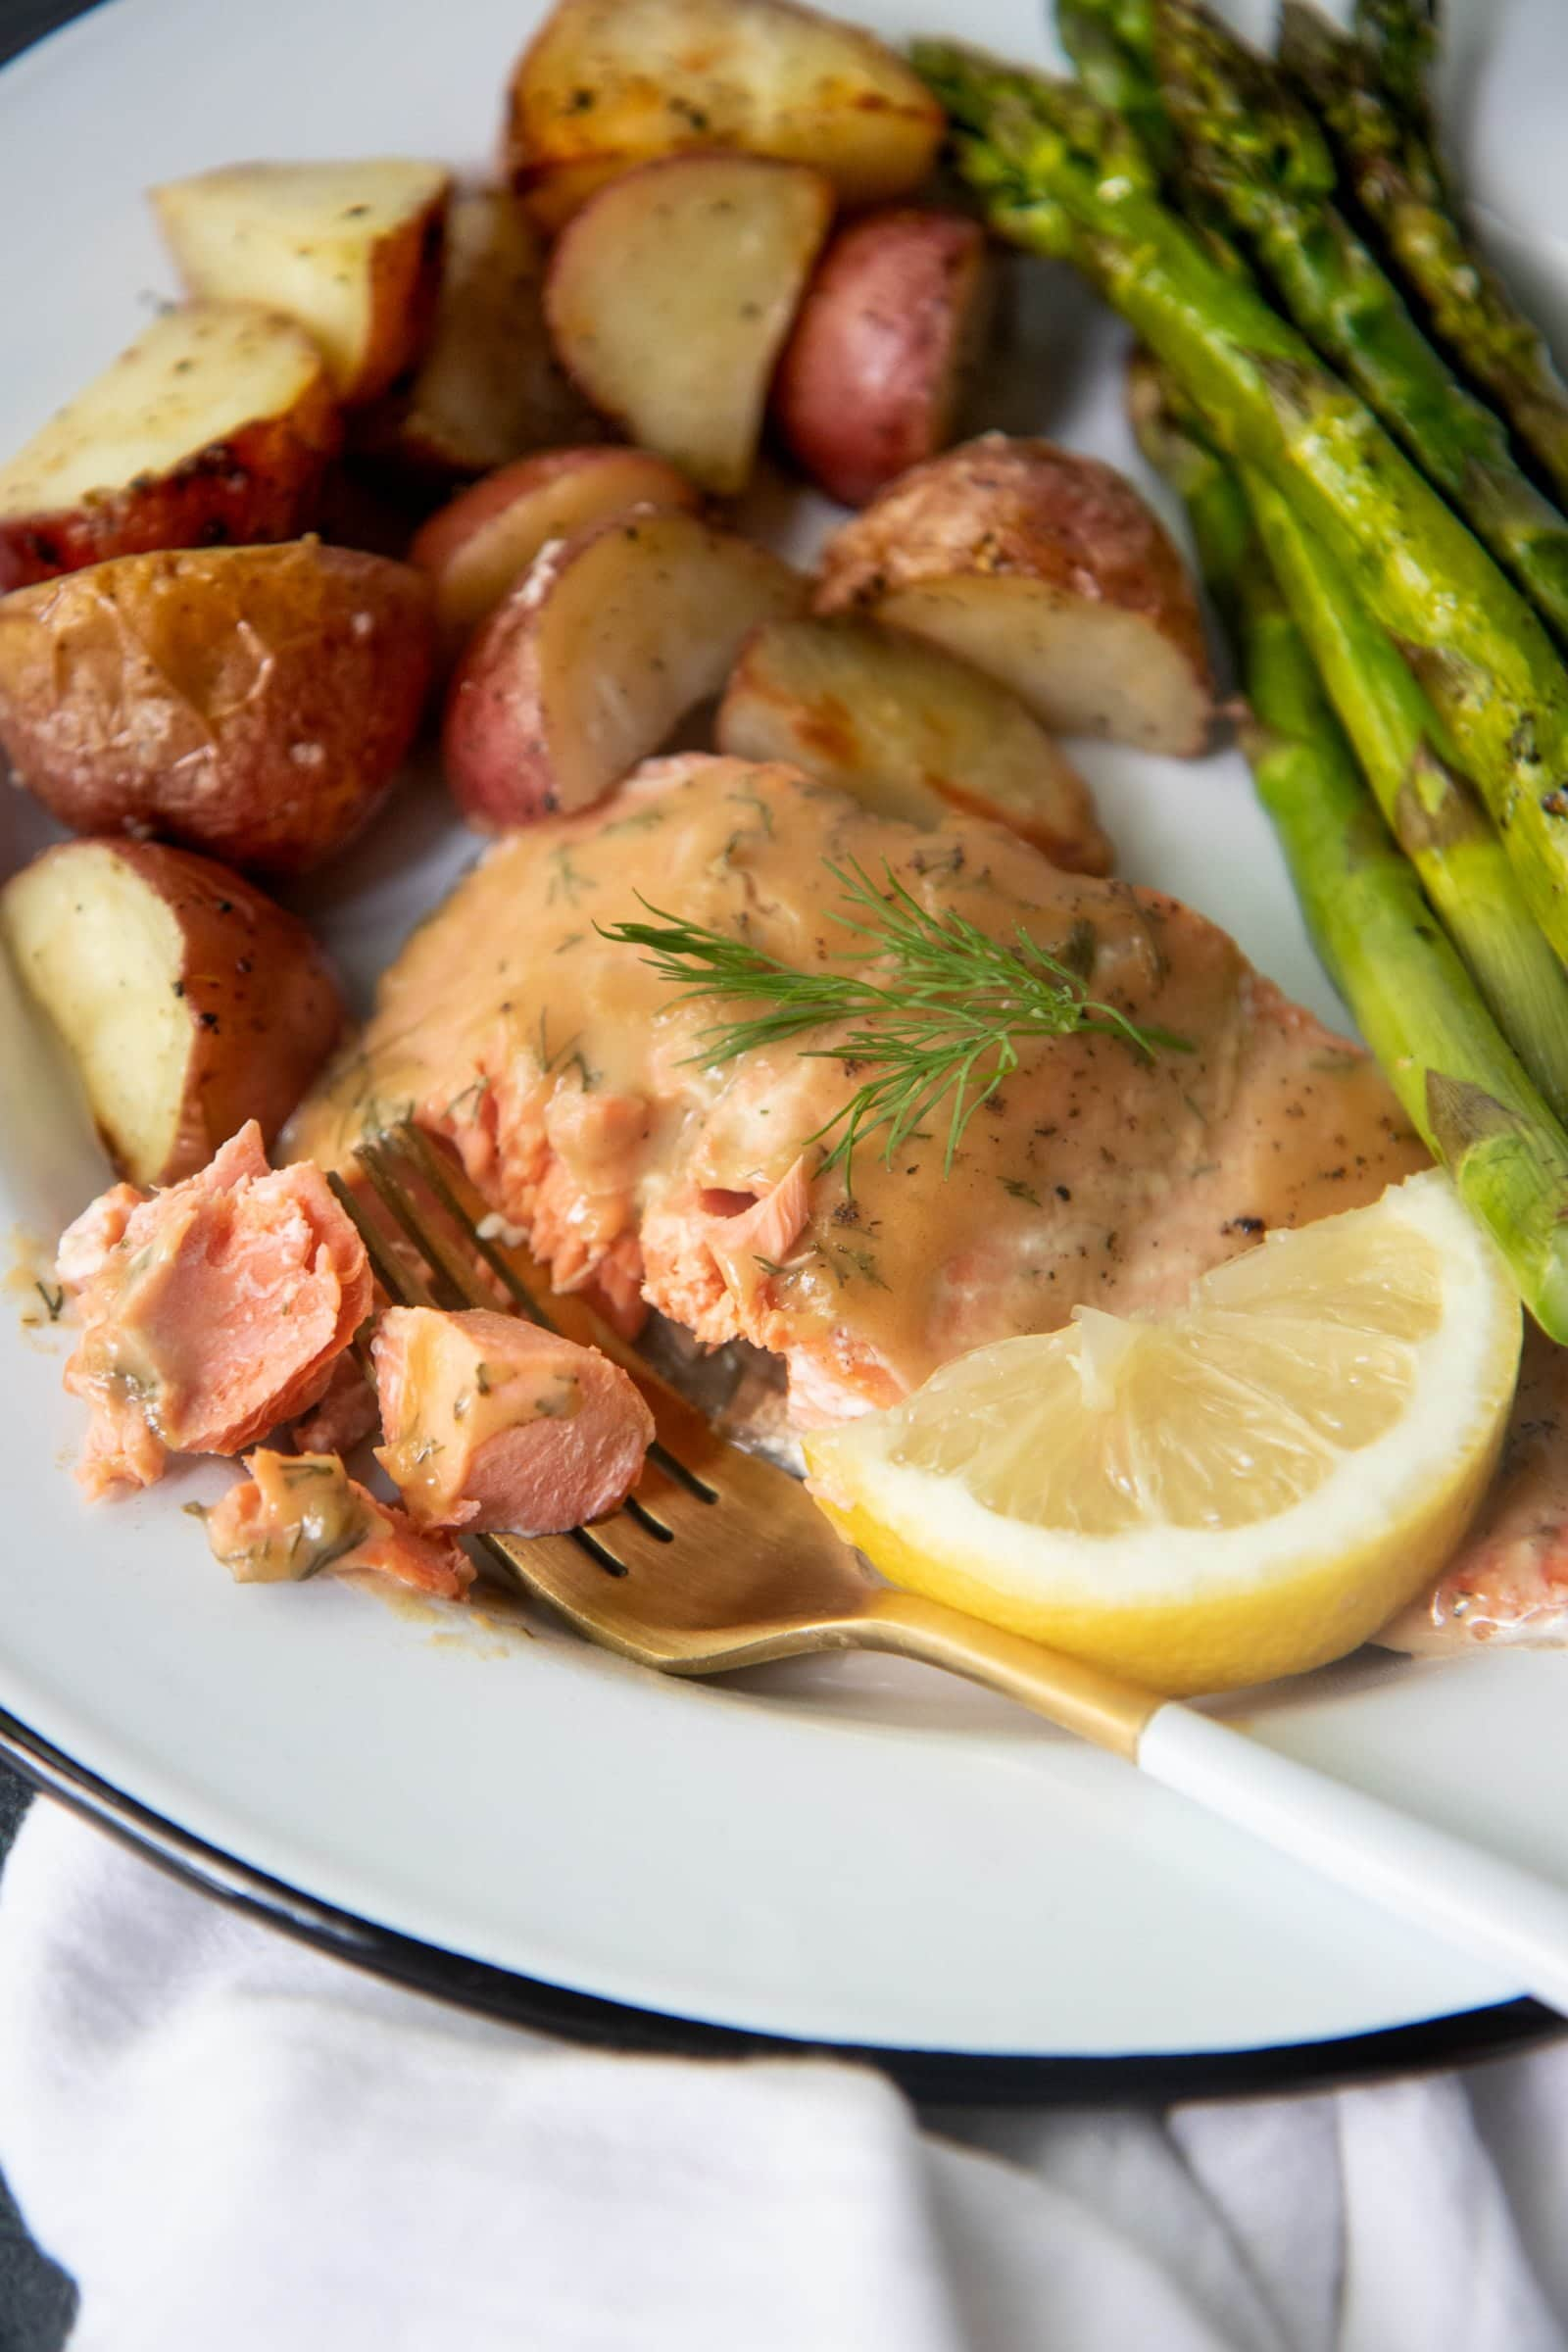 Close-up of roasted maple glazed salmon, asparagus, and potatoes on a white plate with a white and gold fork.